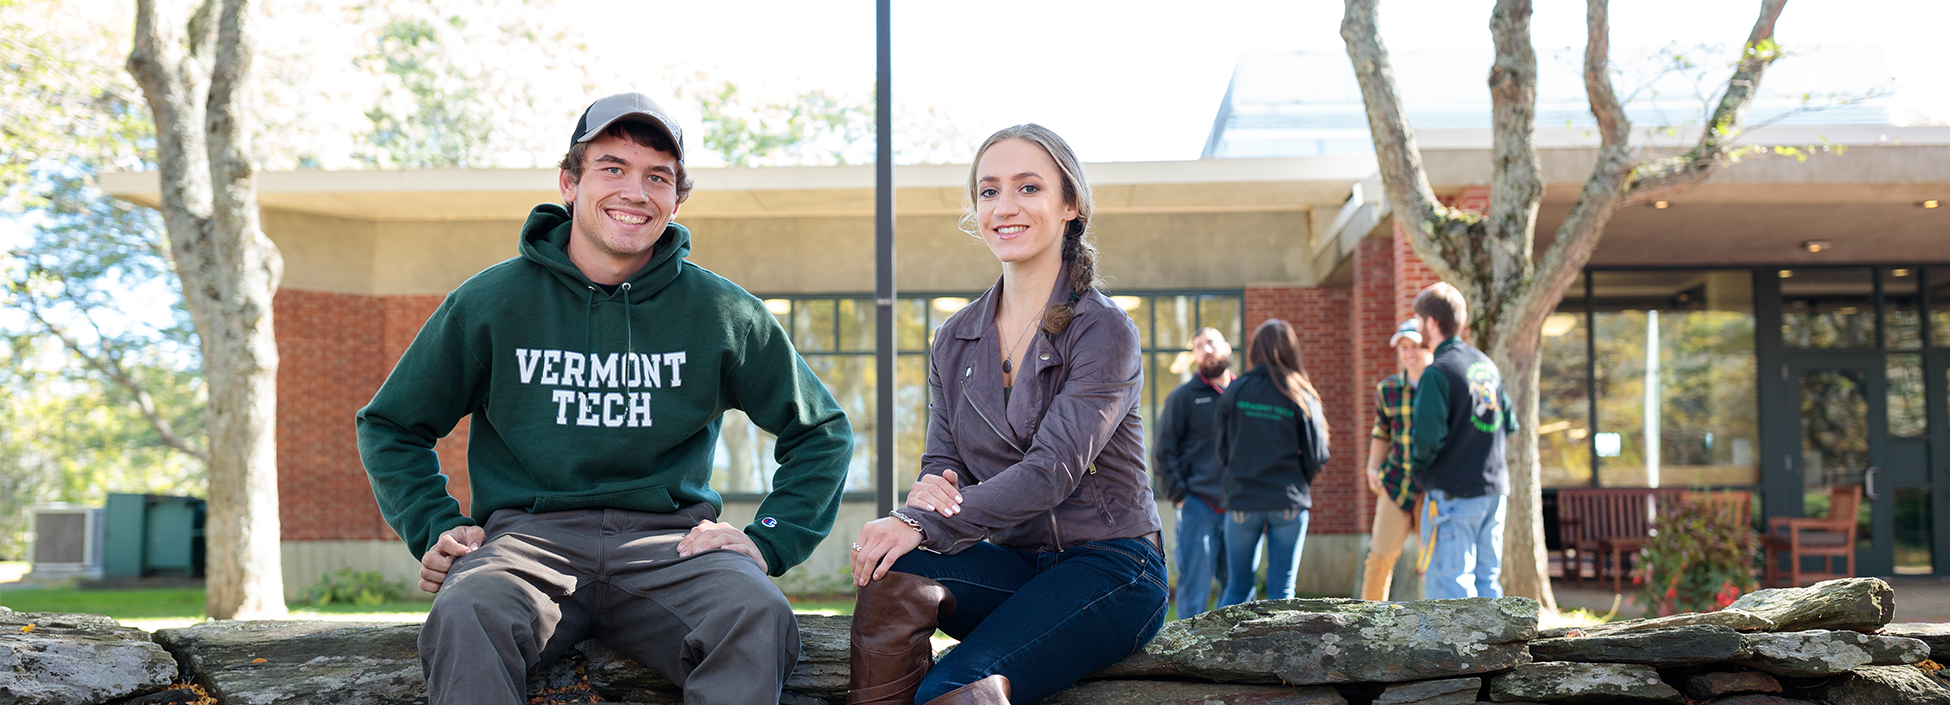 students smile and relax by the library on the stone wall, Randolph Center campus